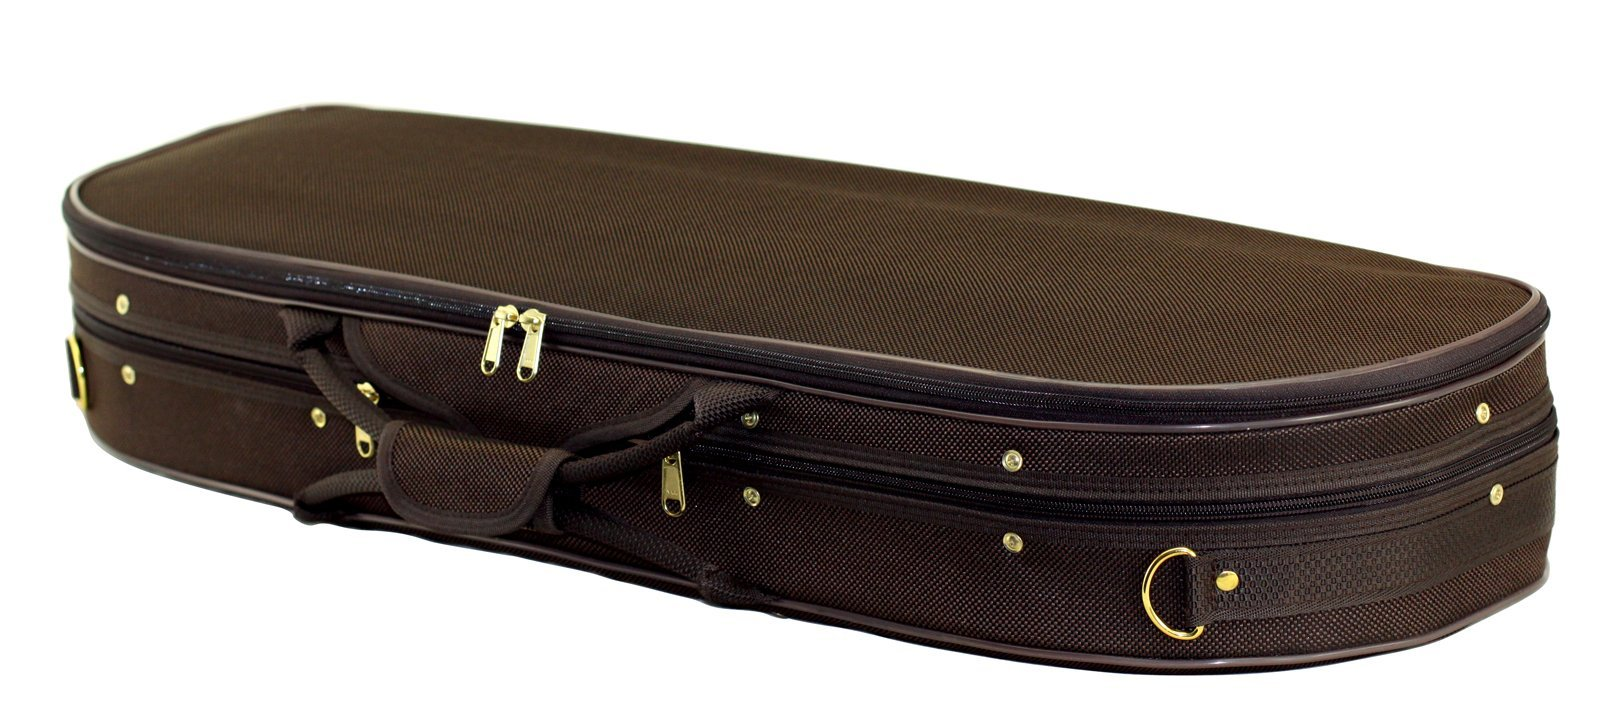 SKY Lightweight Half Moon Shaped Violin Case 4/4 Size (Brown/tan)